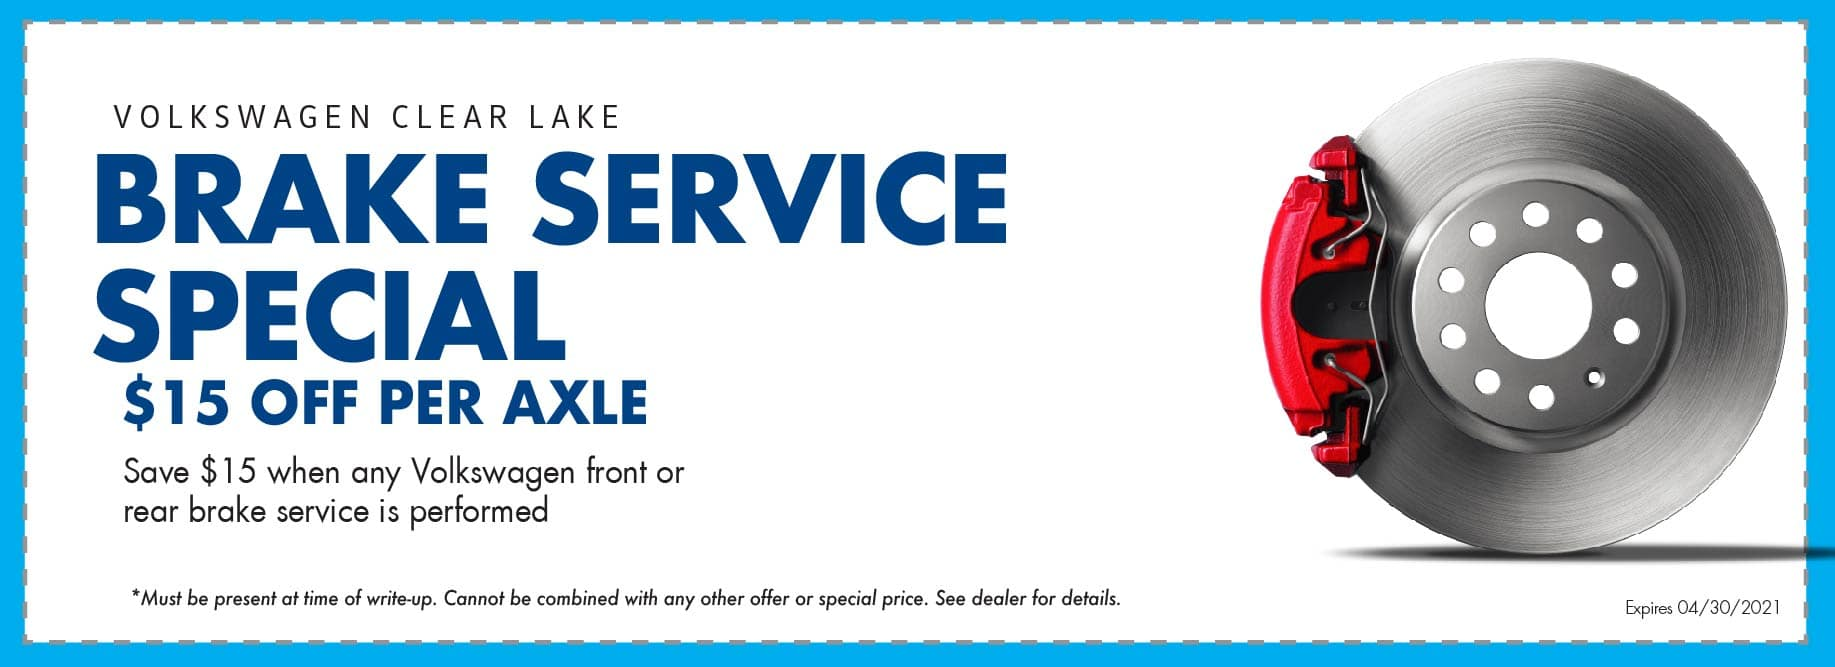 Get $15 off per axel on our brake special at Volkswagen Clear Lake.